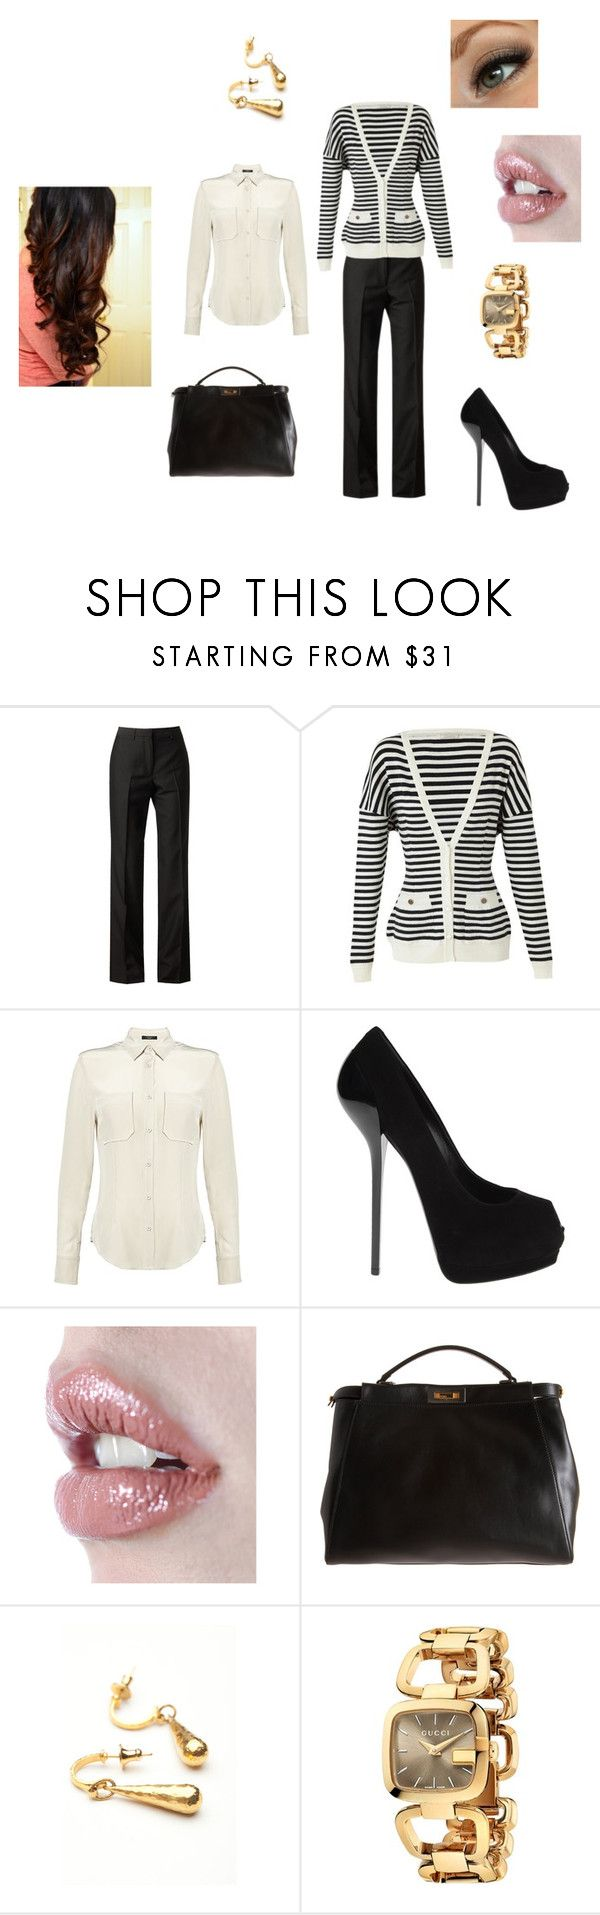 """50 Shades...Ana Steele Grey--how I see her.."" by stacy-williams-white ❤ liked on Polyvore featuring Maison Margiela, Nina Ricci, Weekend Max Mara, Giuseppe Zanotti, Ellis Faas, Fendi, Gurhan and Gucci"